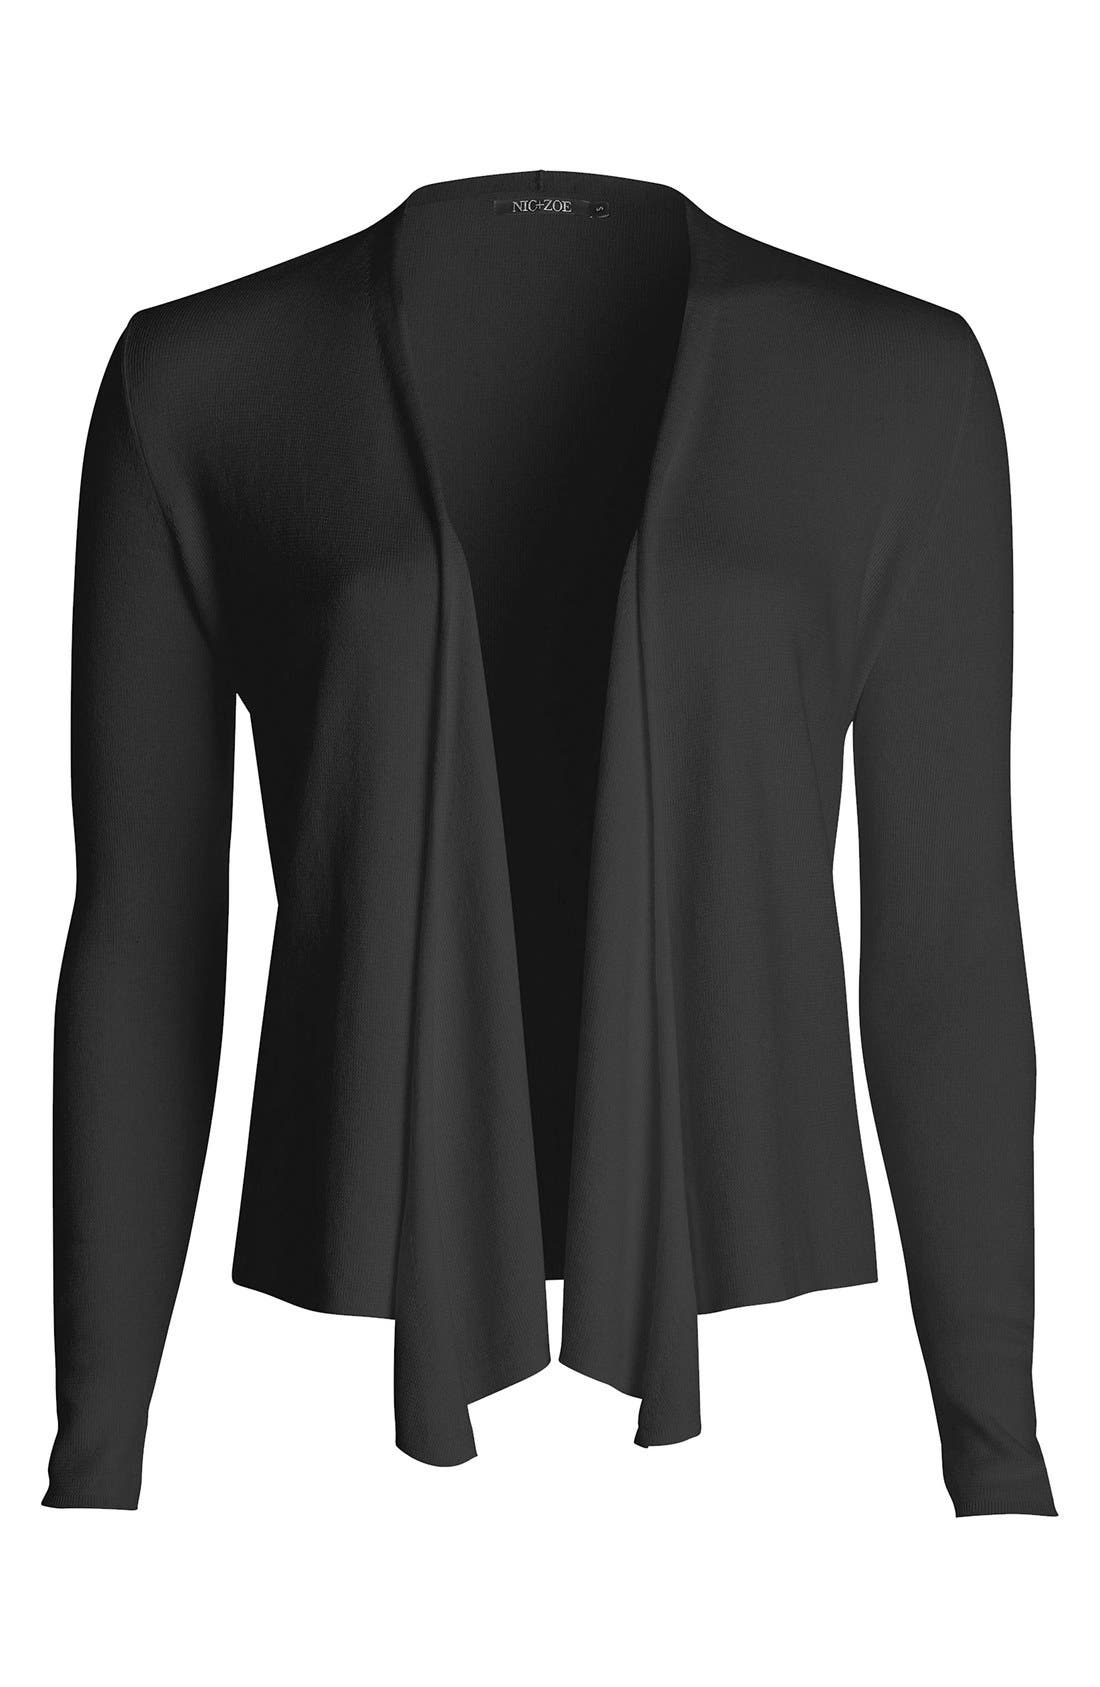 Four-Way Convertible Cardigan,                             Alternate thumbnail 4, color,                             Black Onyx